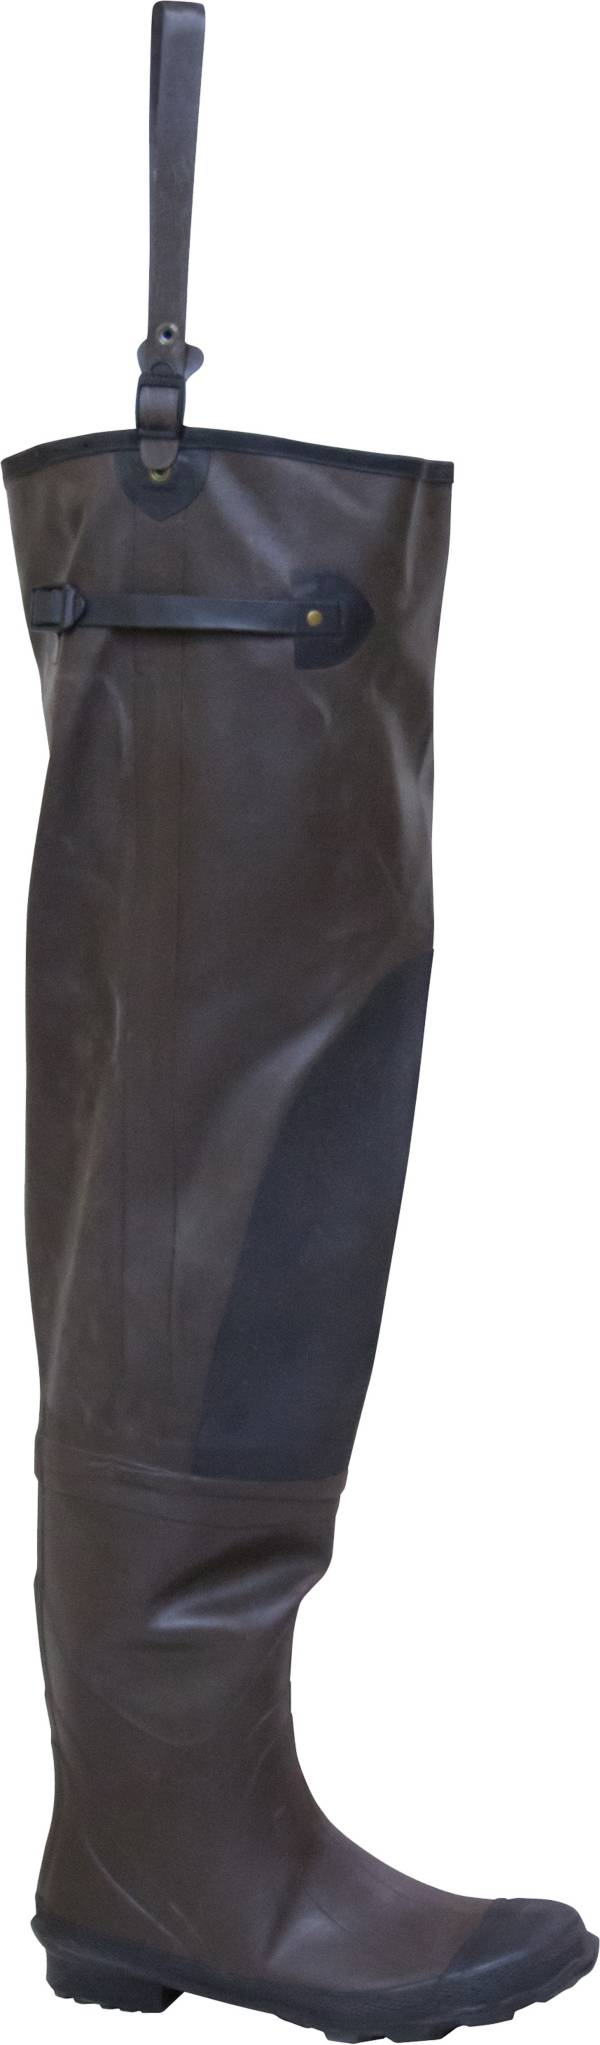 frogg toggs Classic Rubber Hip Waders product image